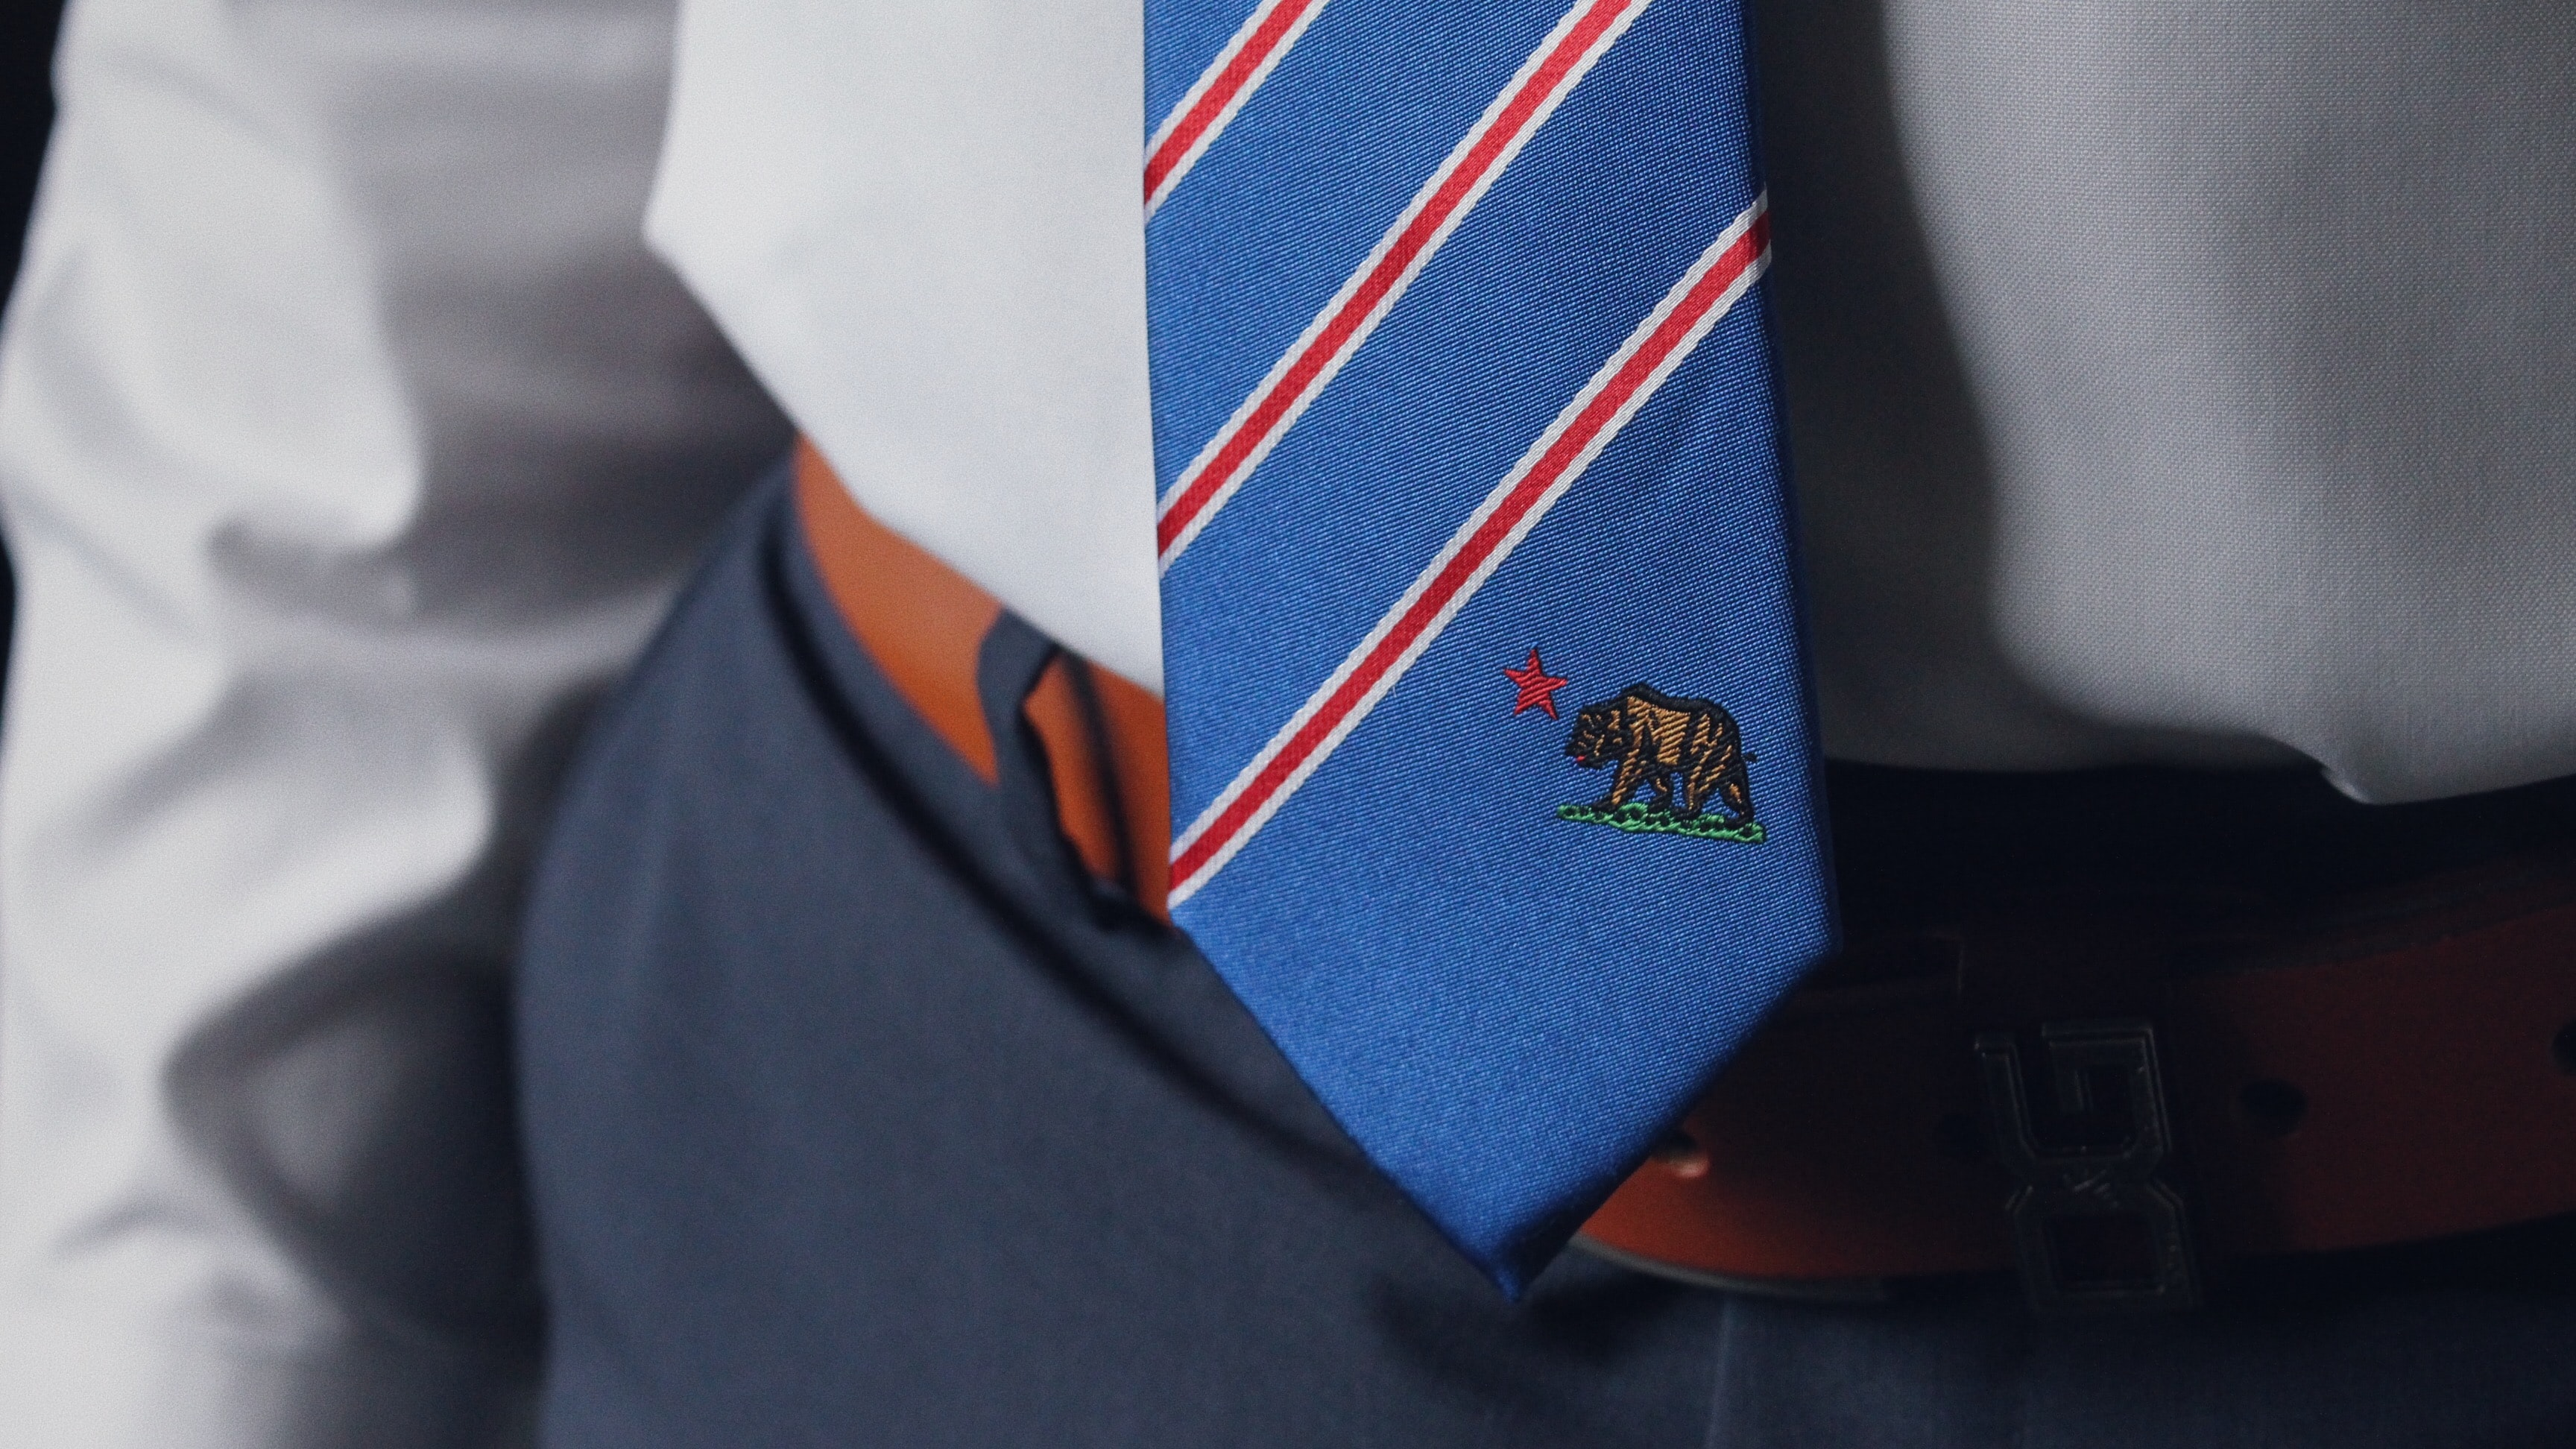 person wearing blue and red necktie